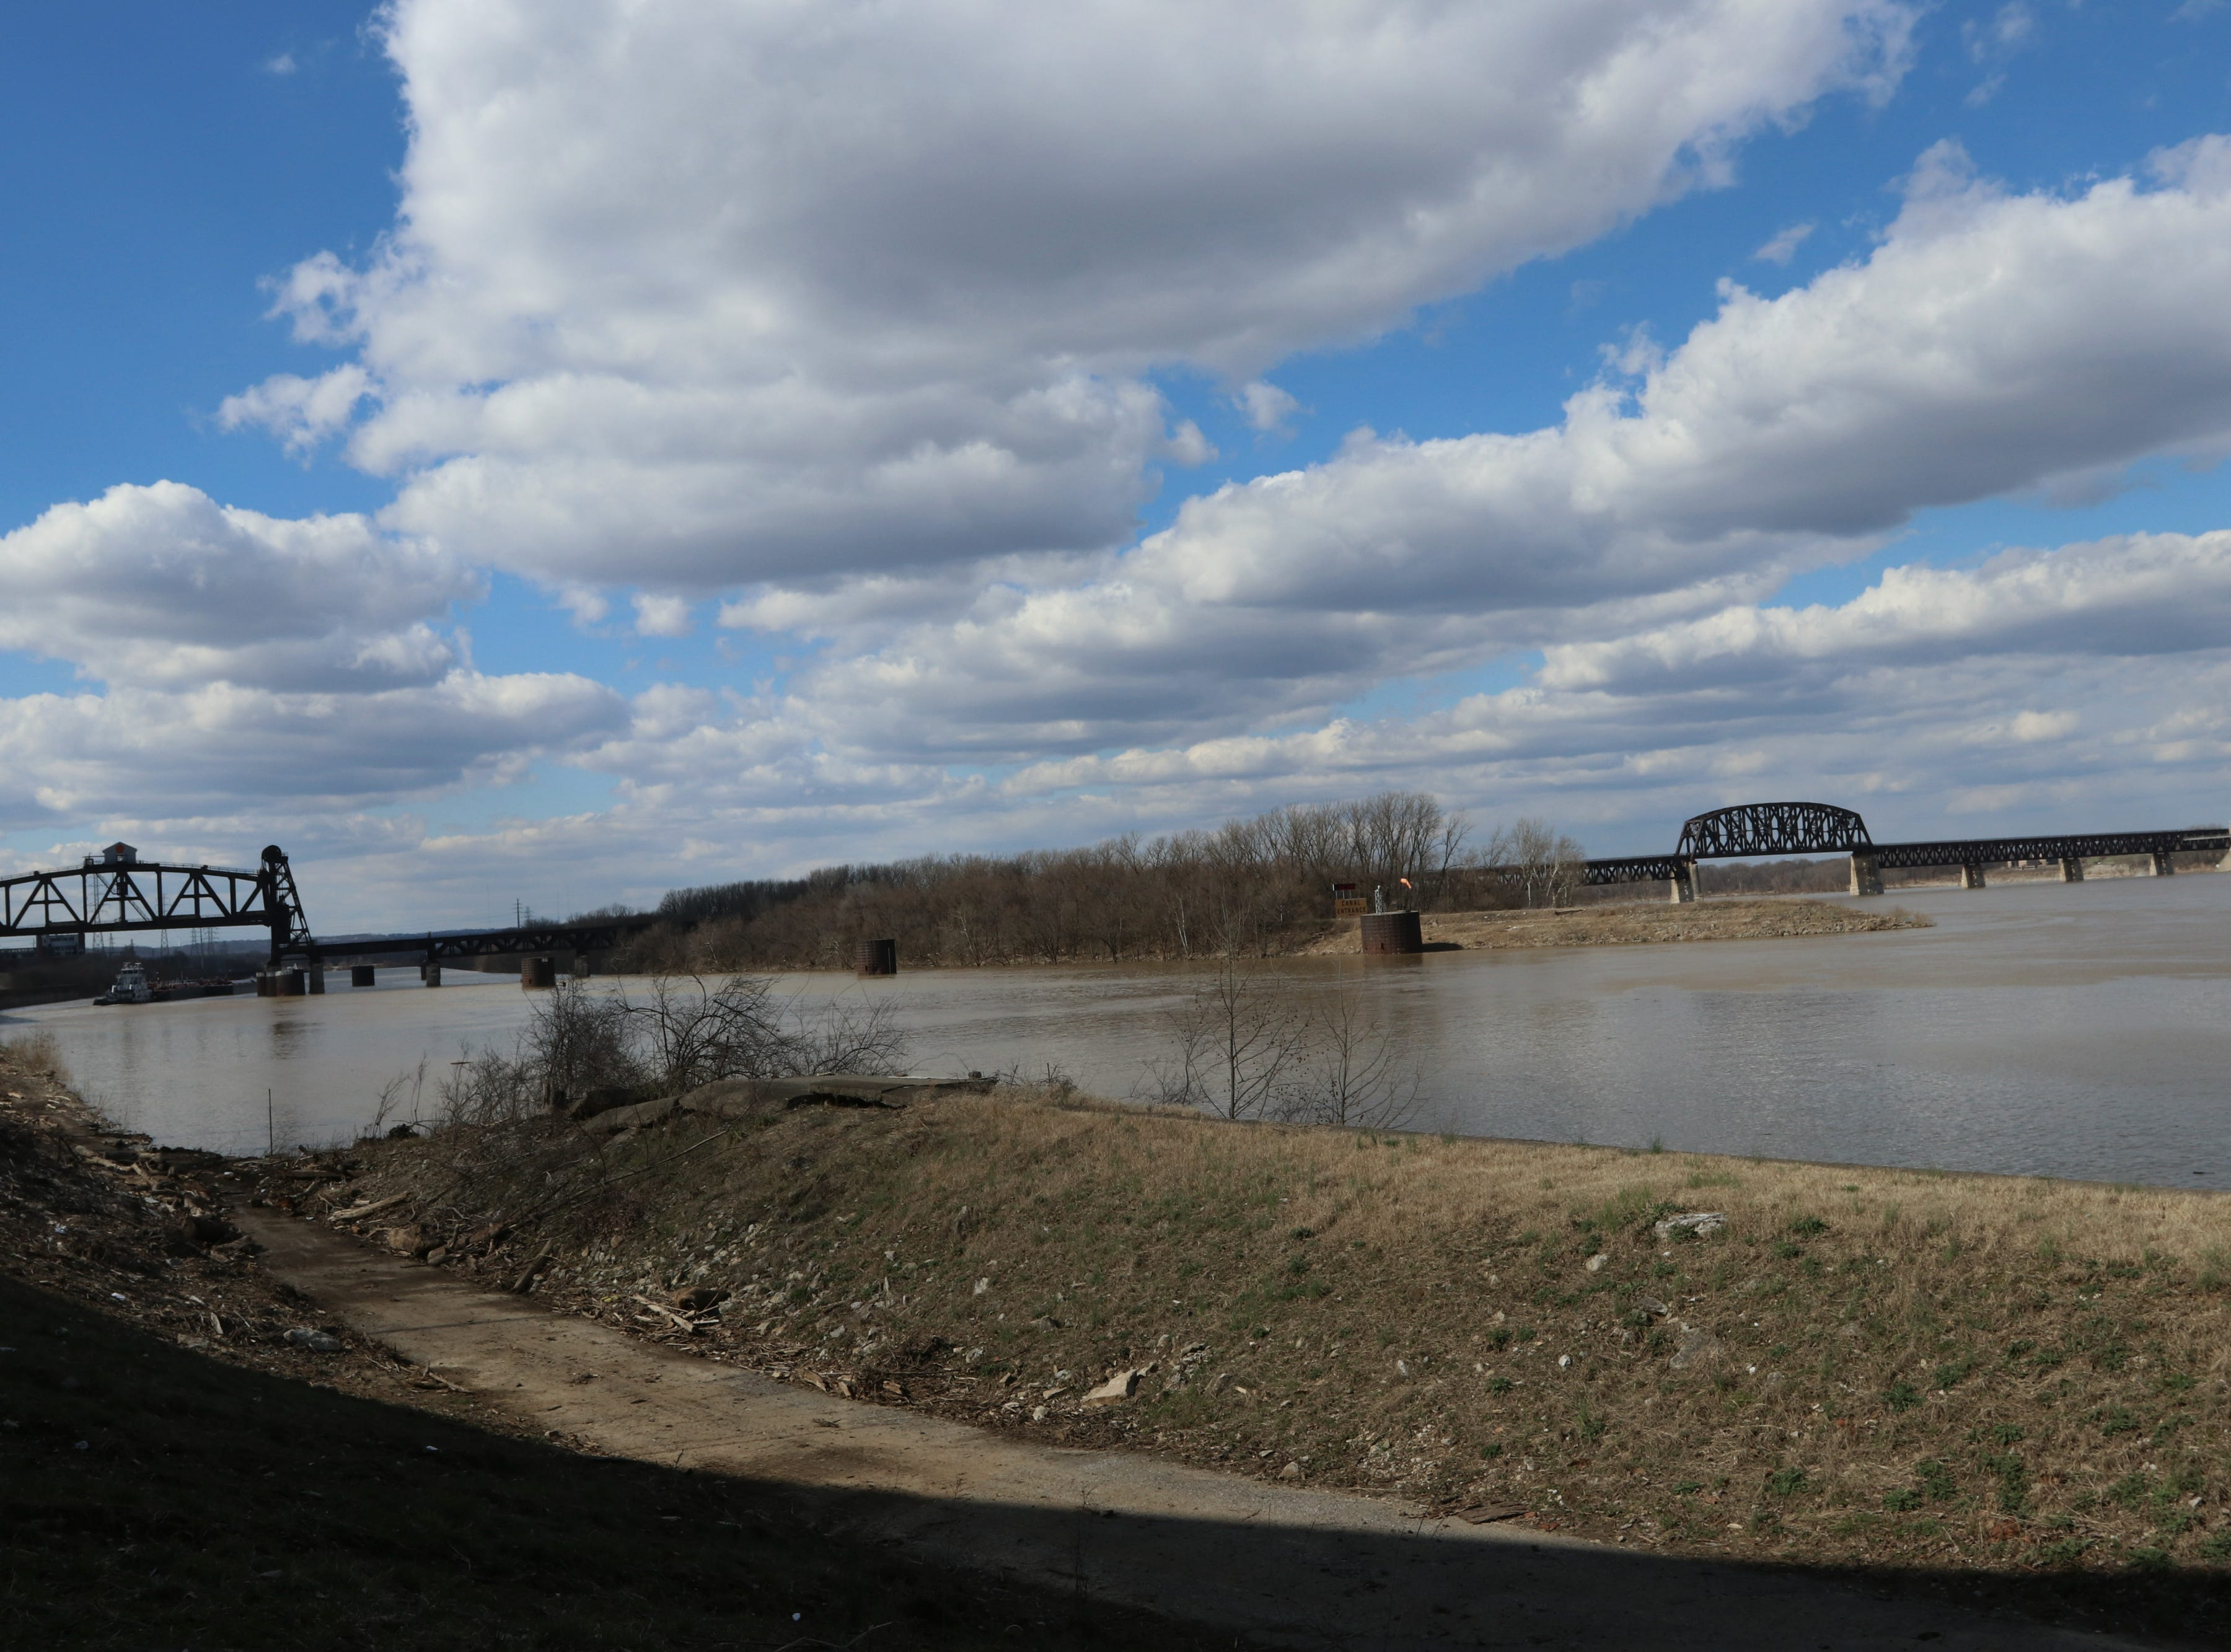 A view of the Ohio River from a pedestrian path in Louisville's Portland neighborhood.